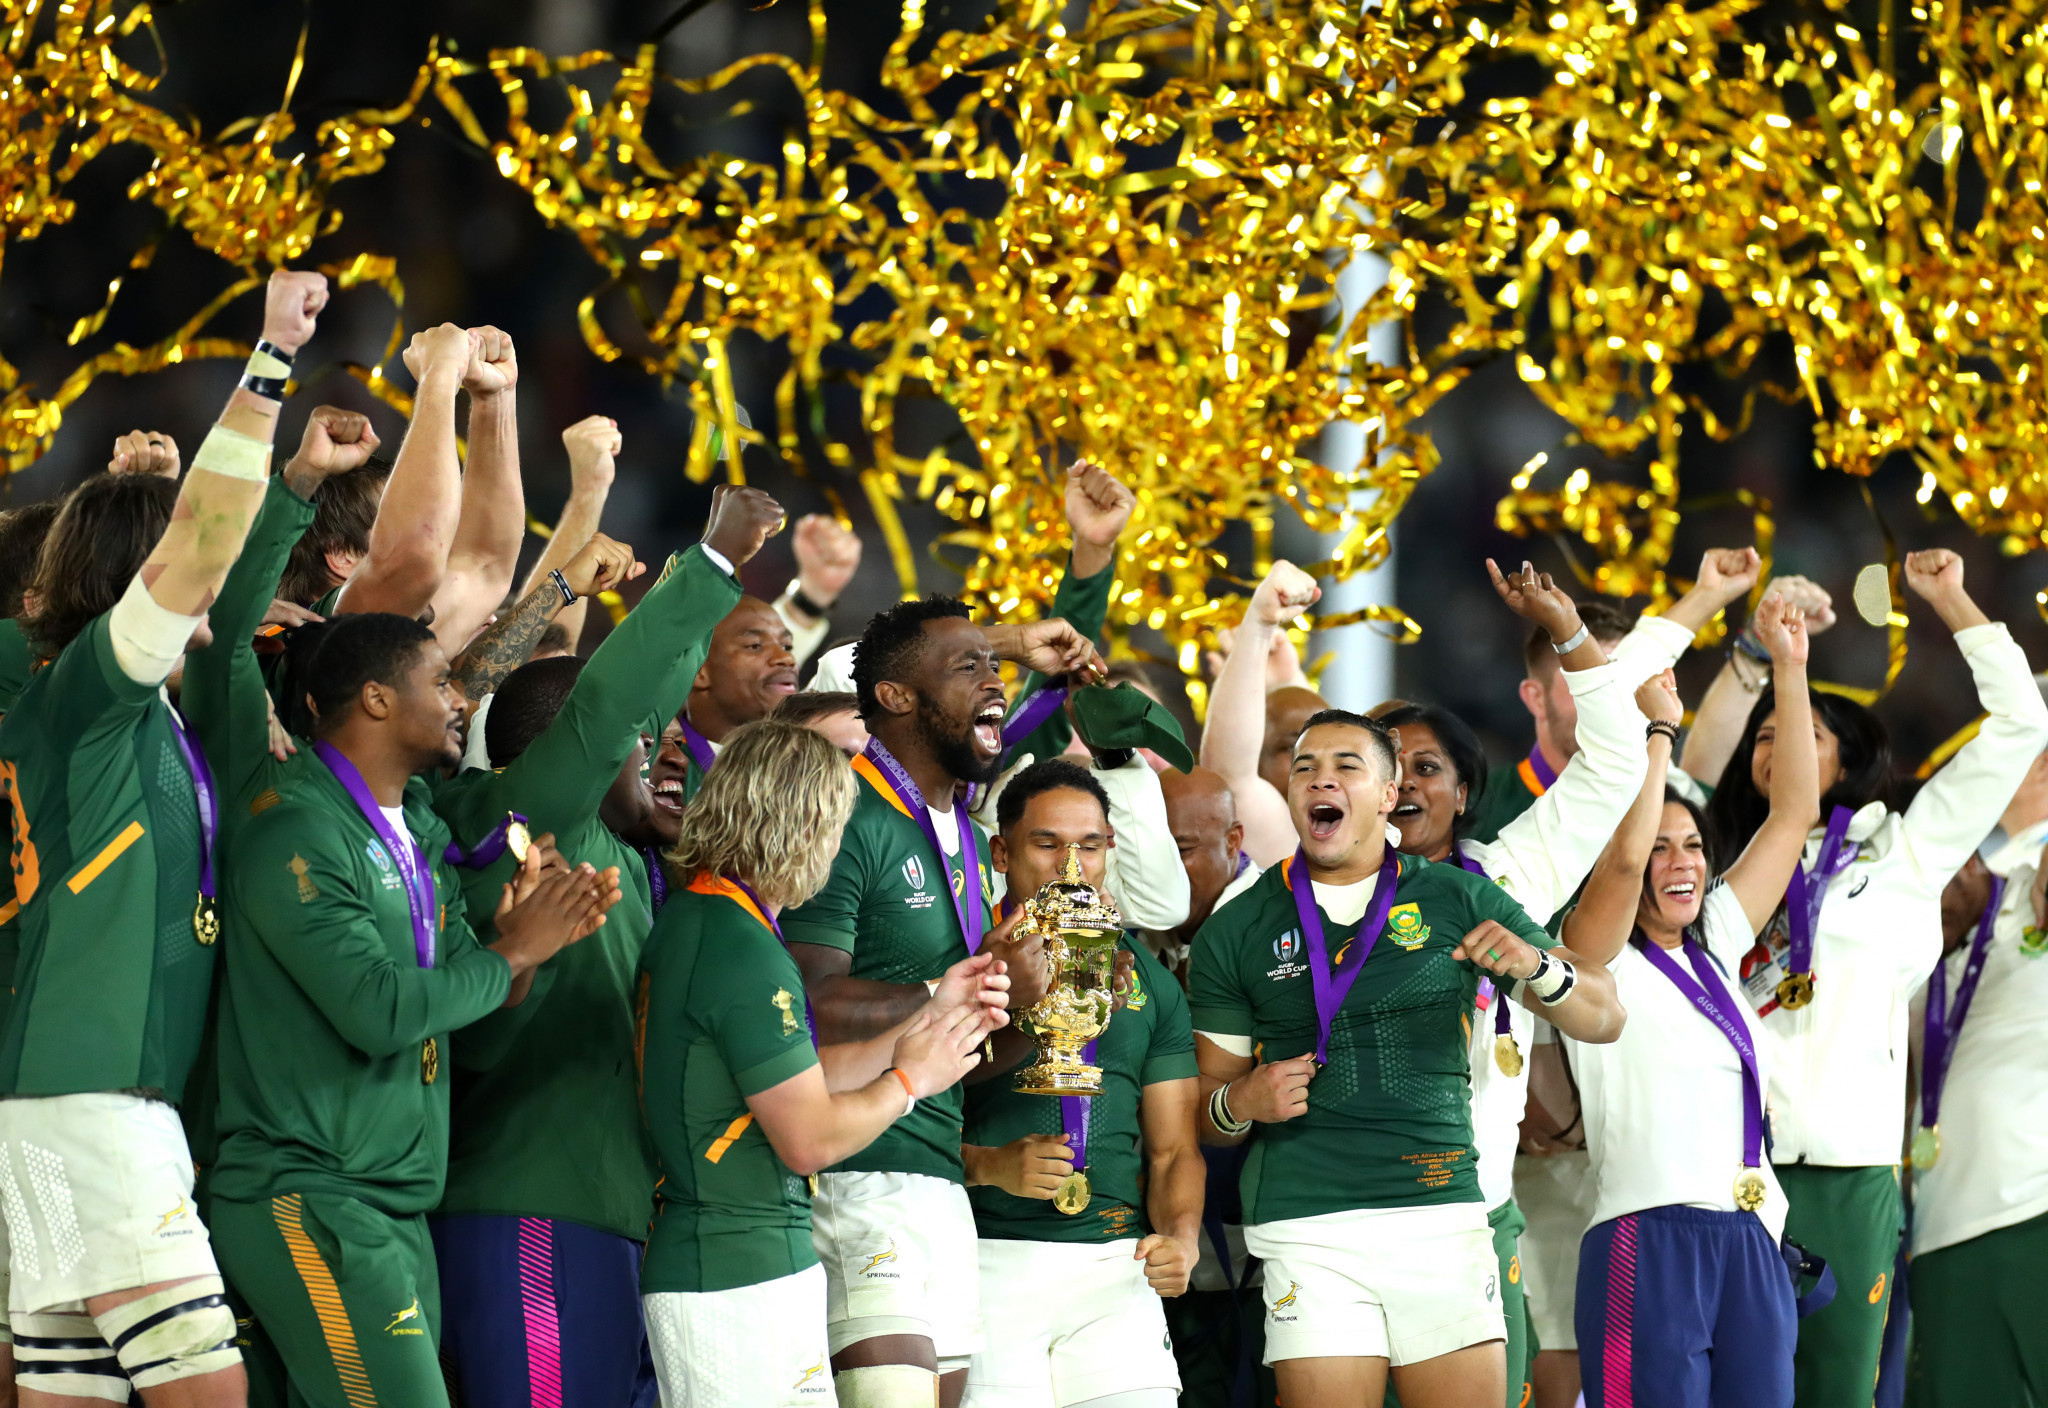 South Africa emphatically celebrated winning the 2019 Rugby World Cup ©Getty Images